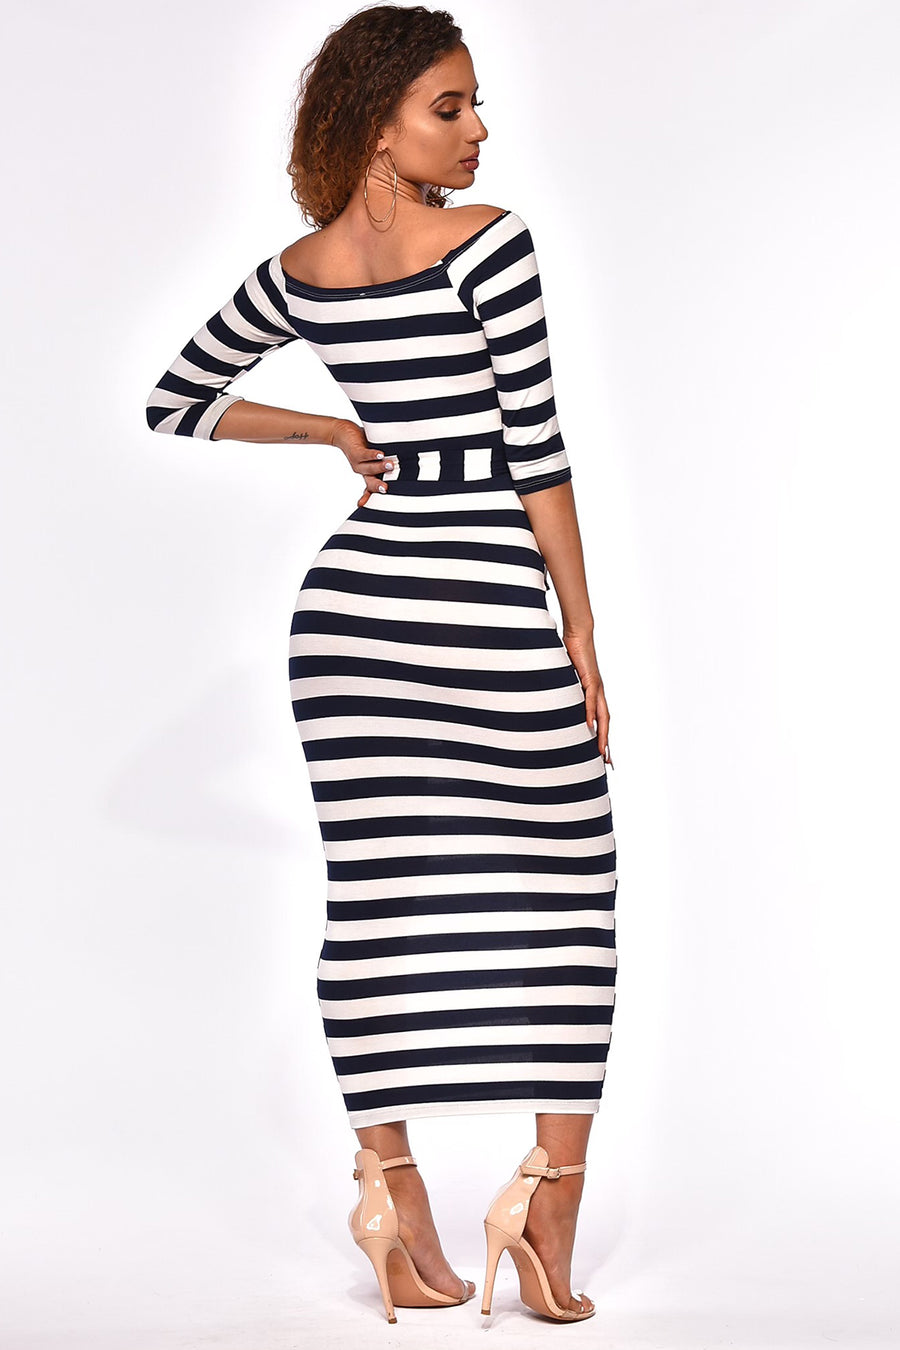 AT EASE MIDI DRESS